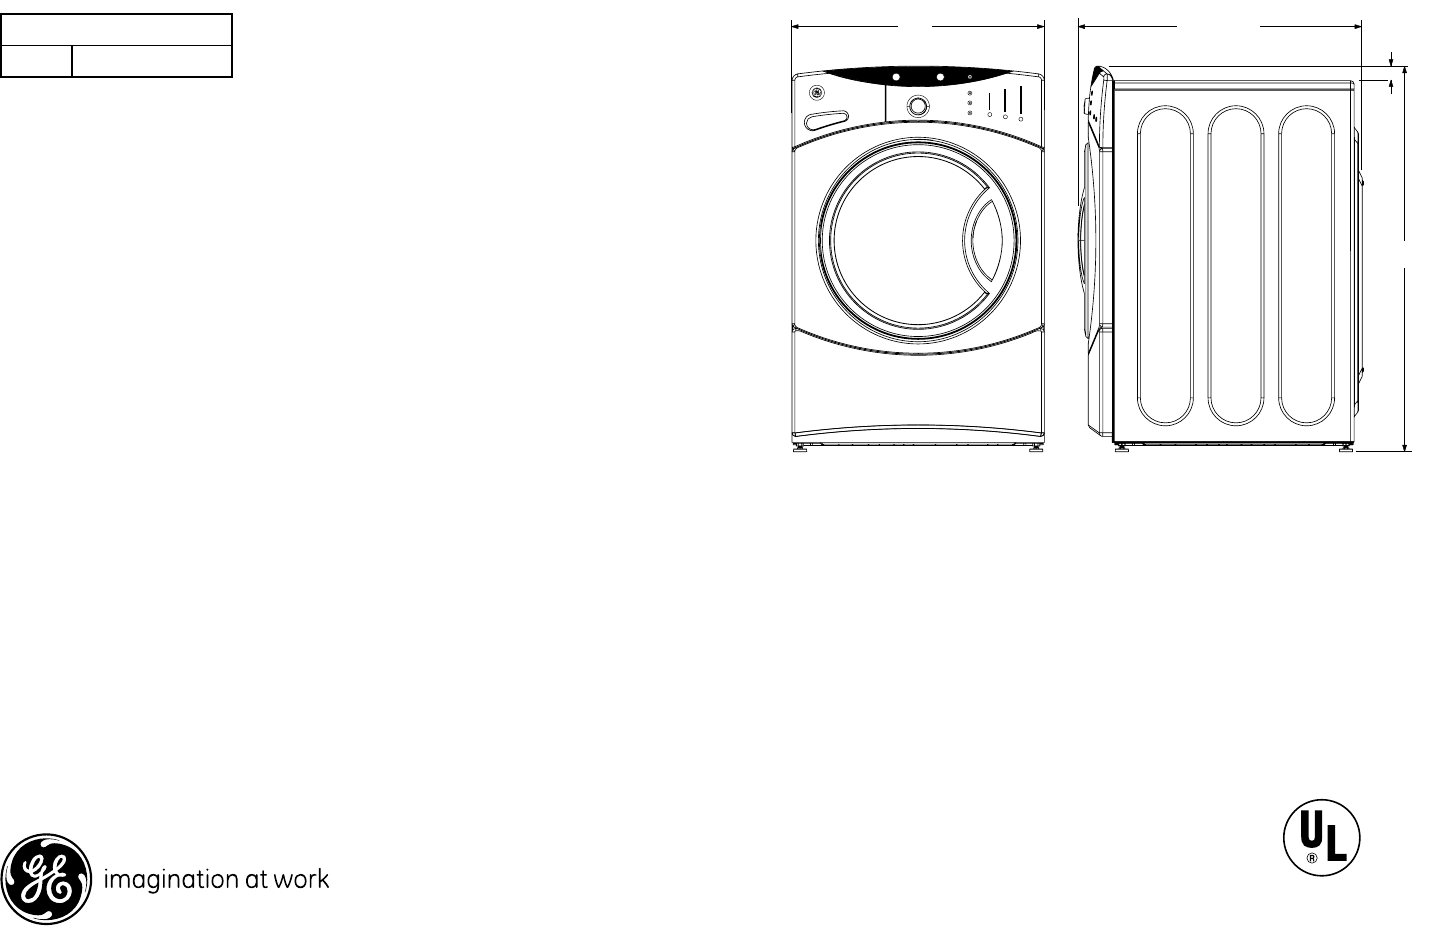 Ge Washer Wbvh H User Guide